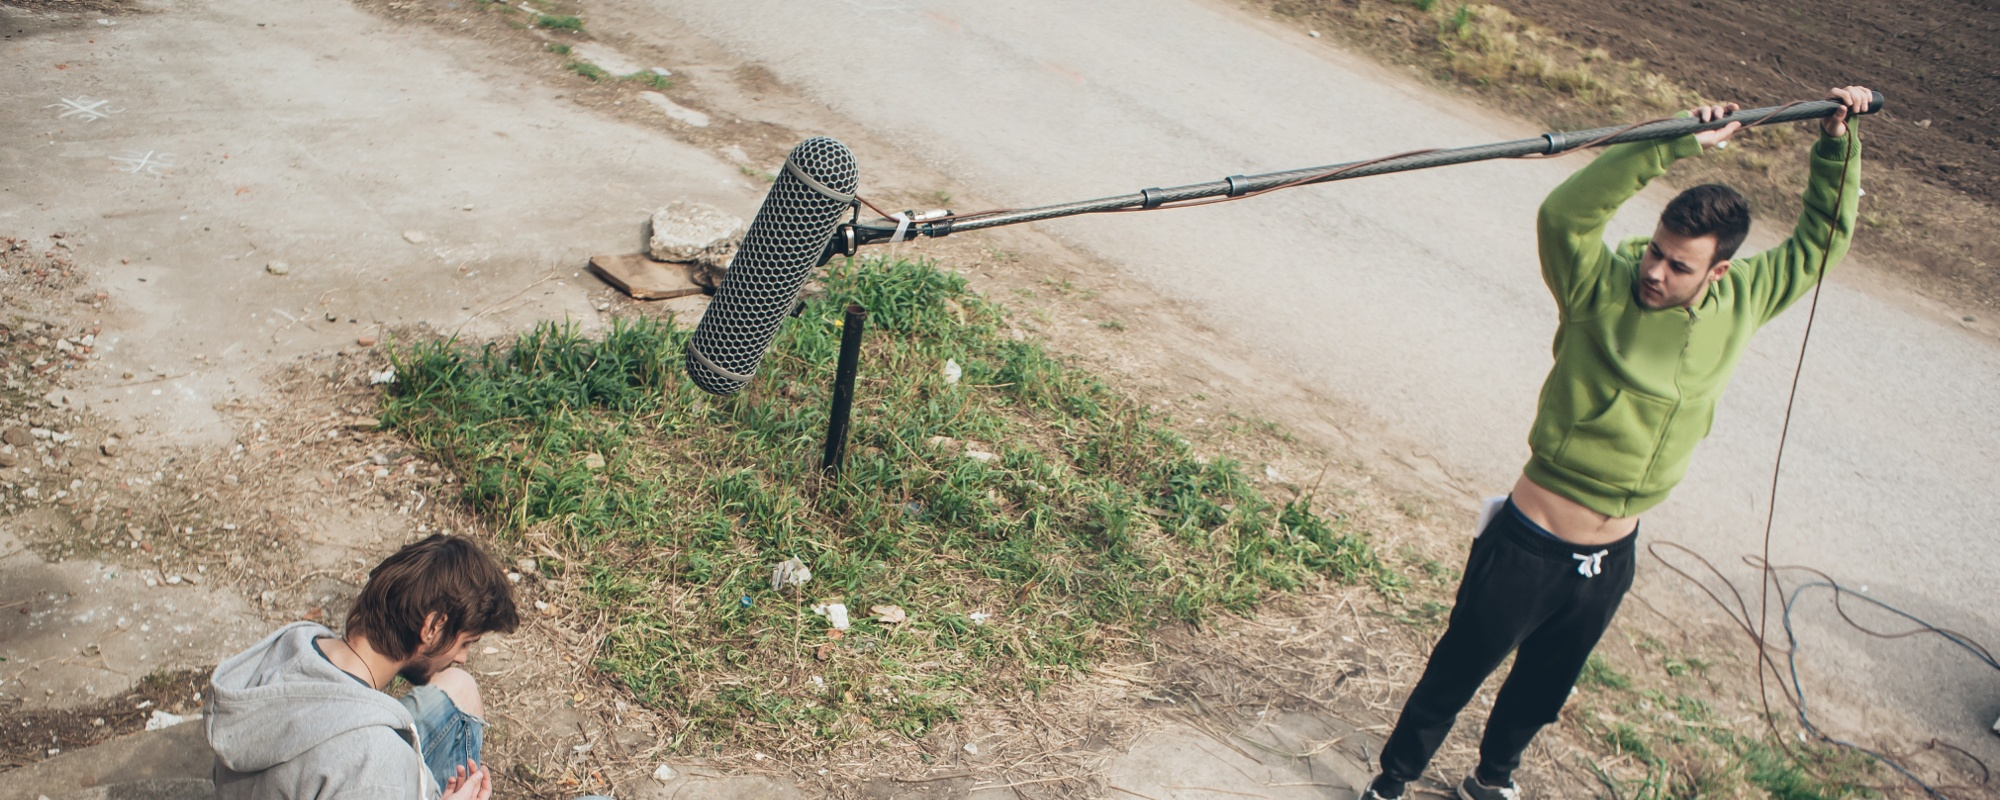 Location sound recordist recording exterior audio